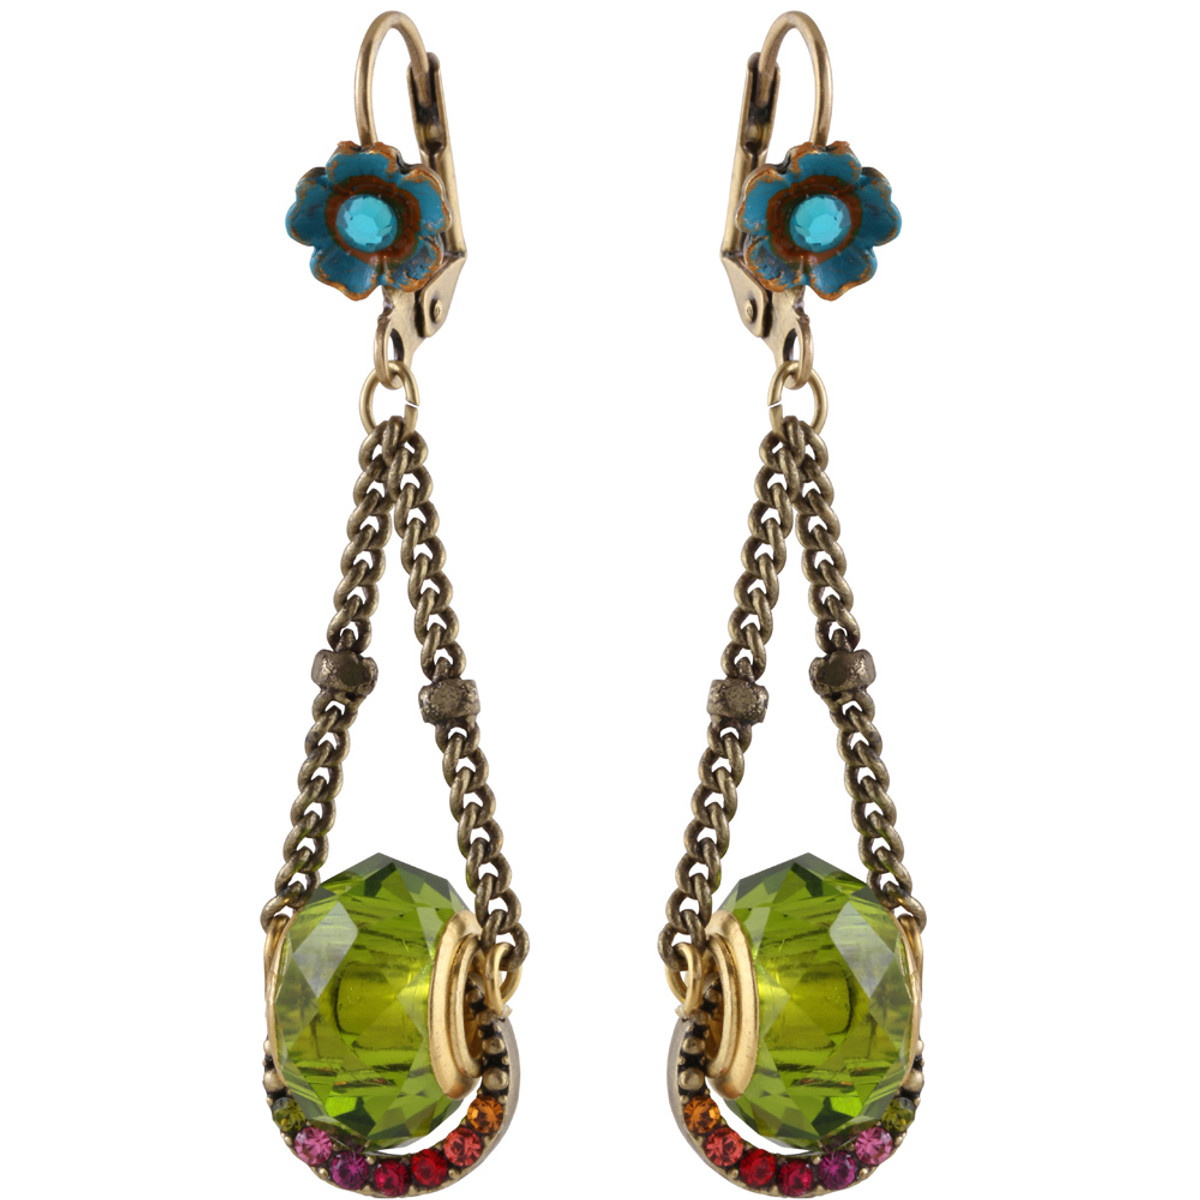 Michal Negrin Swings Earrings - Multi Color